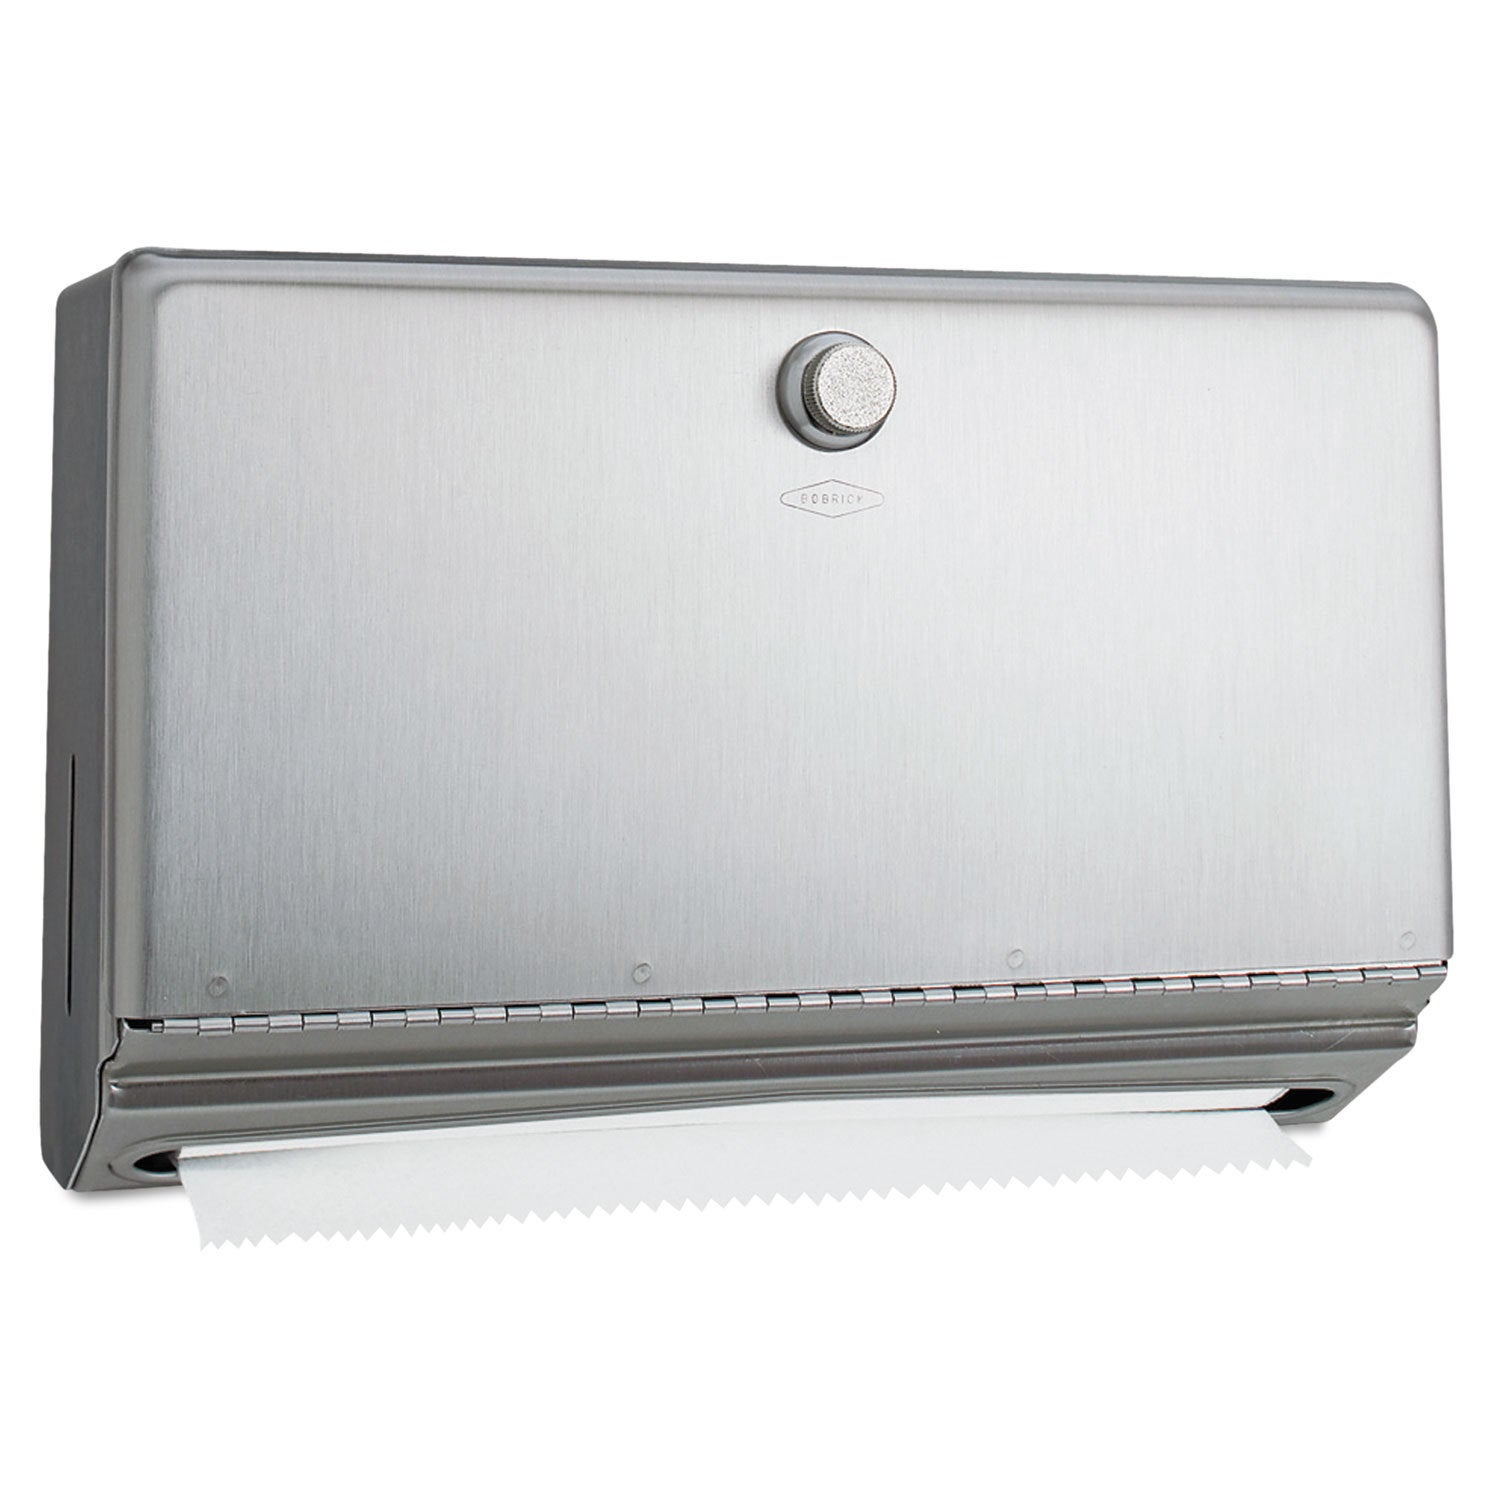 Bobrick Surface-Mounted Paper Towel Dispenser Stainless S...